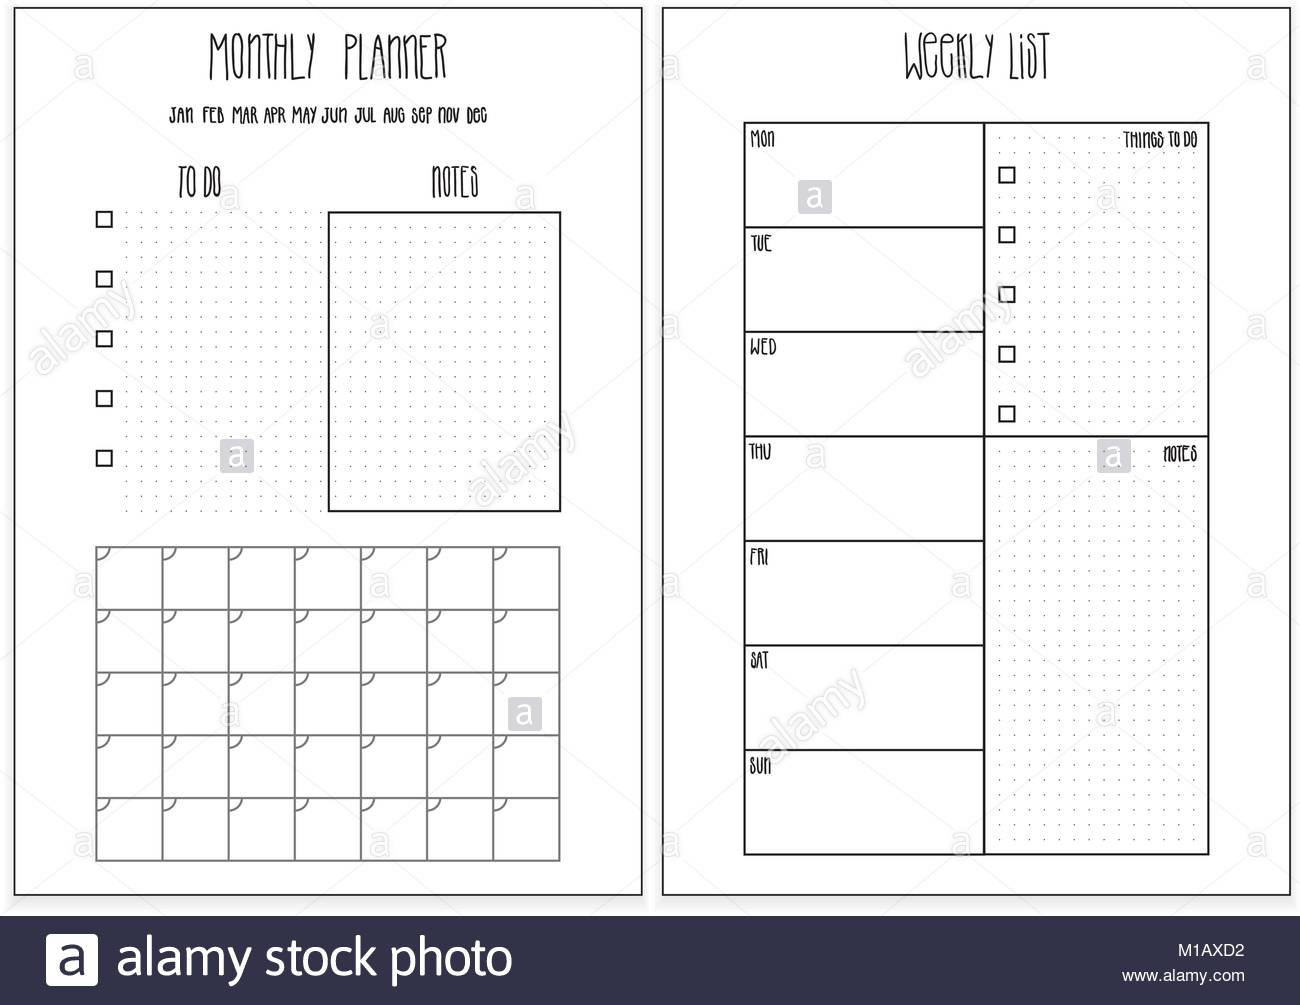 Planner Printable Stock Photos & Planner Printable Stock Images - Alamy throughout Doodle Monthly Planner Printer Templates